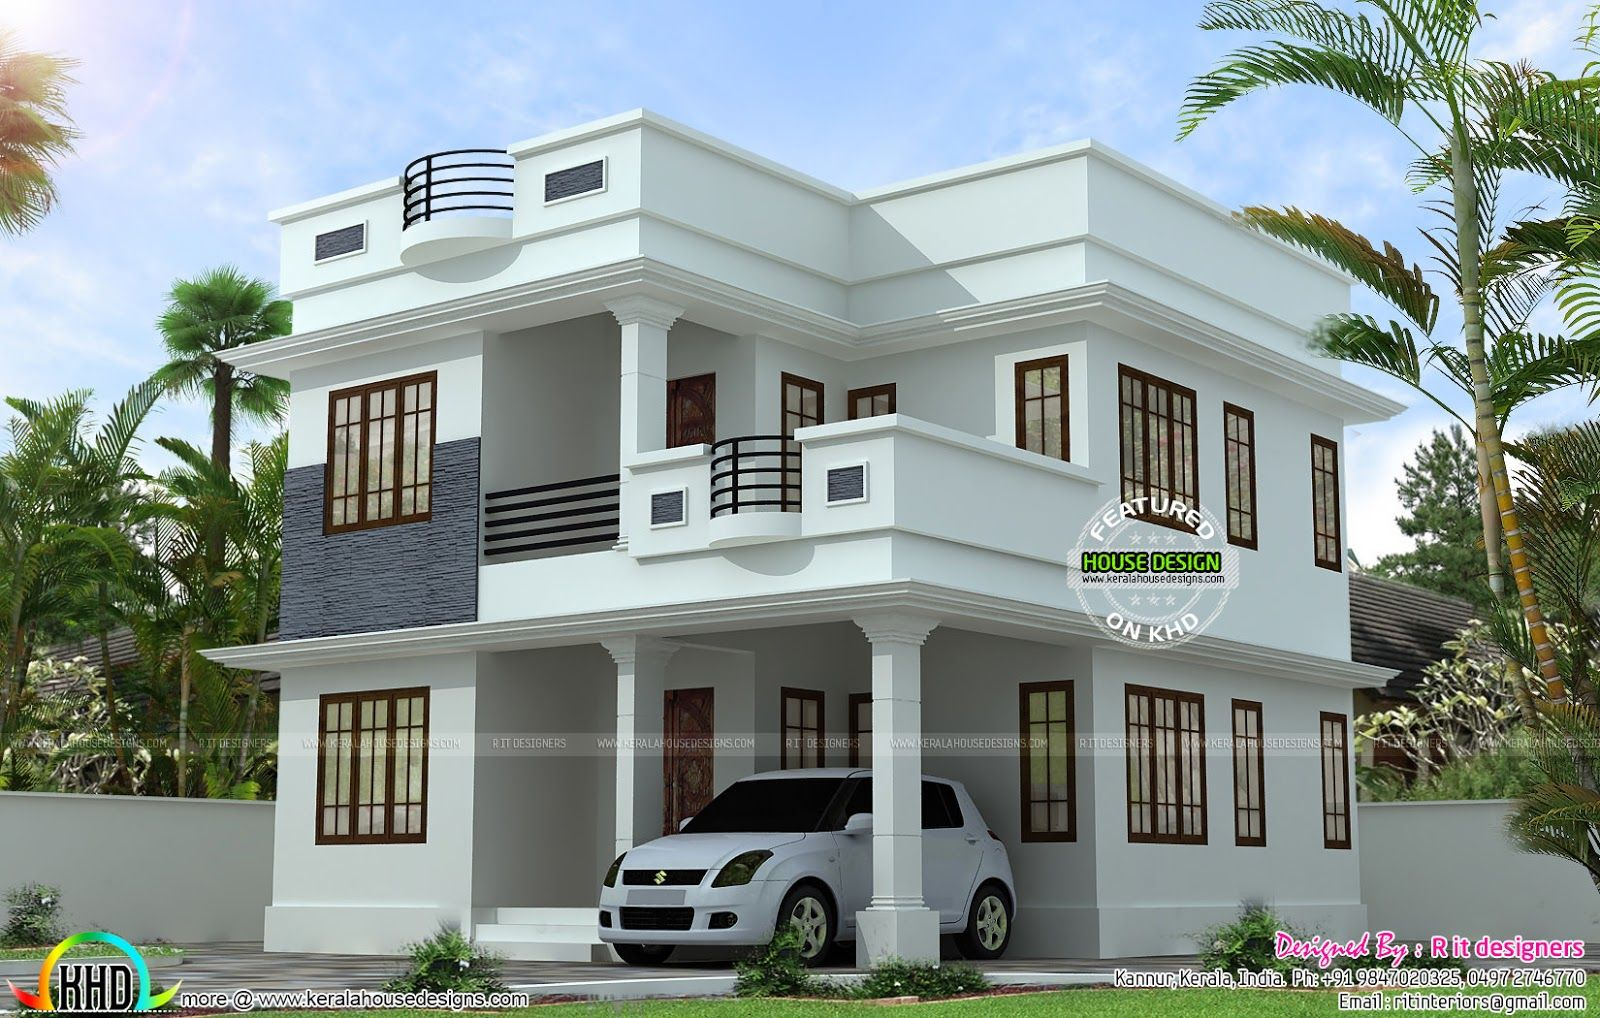 Neat and simple small house plan kerala home design floor plans also rh ar pinterest